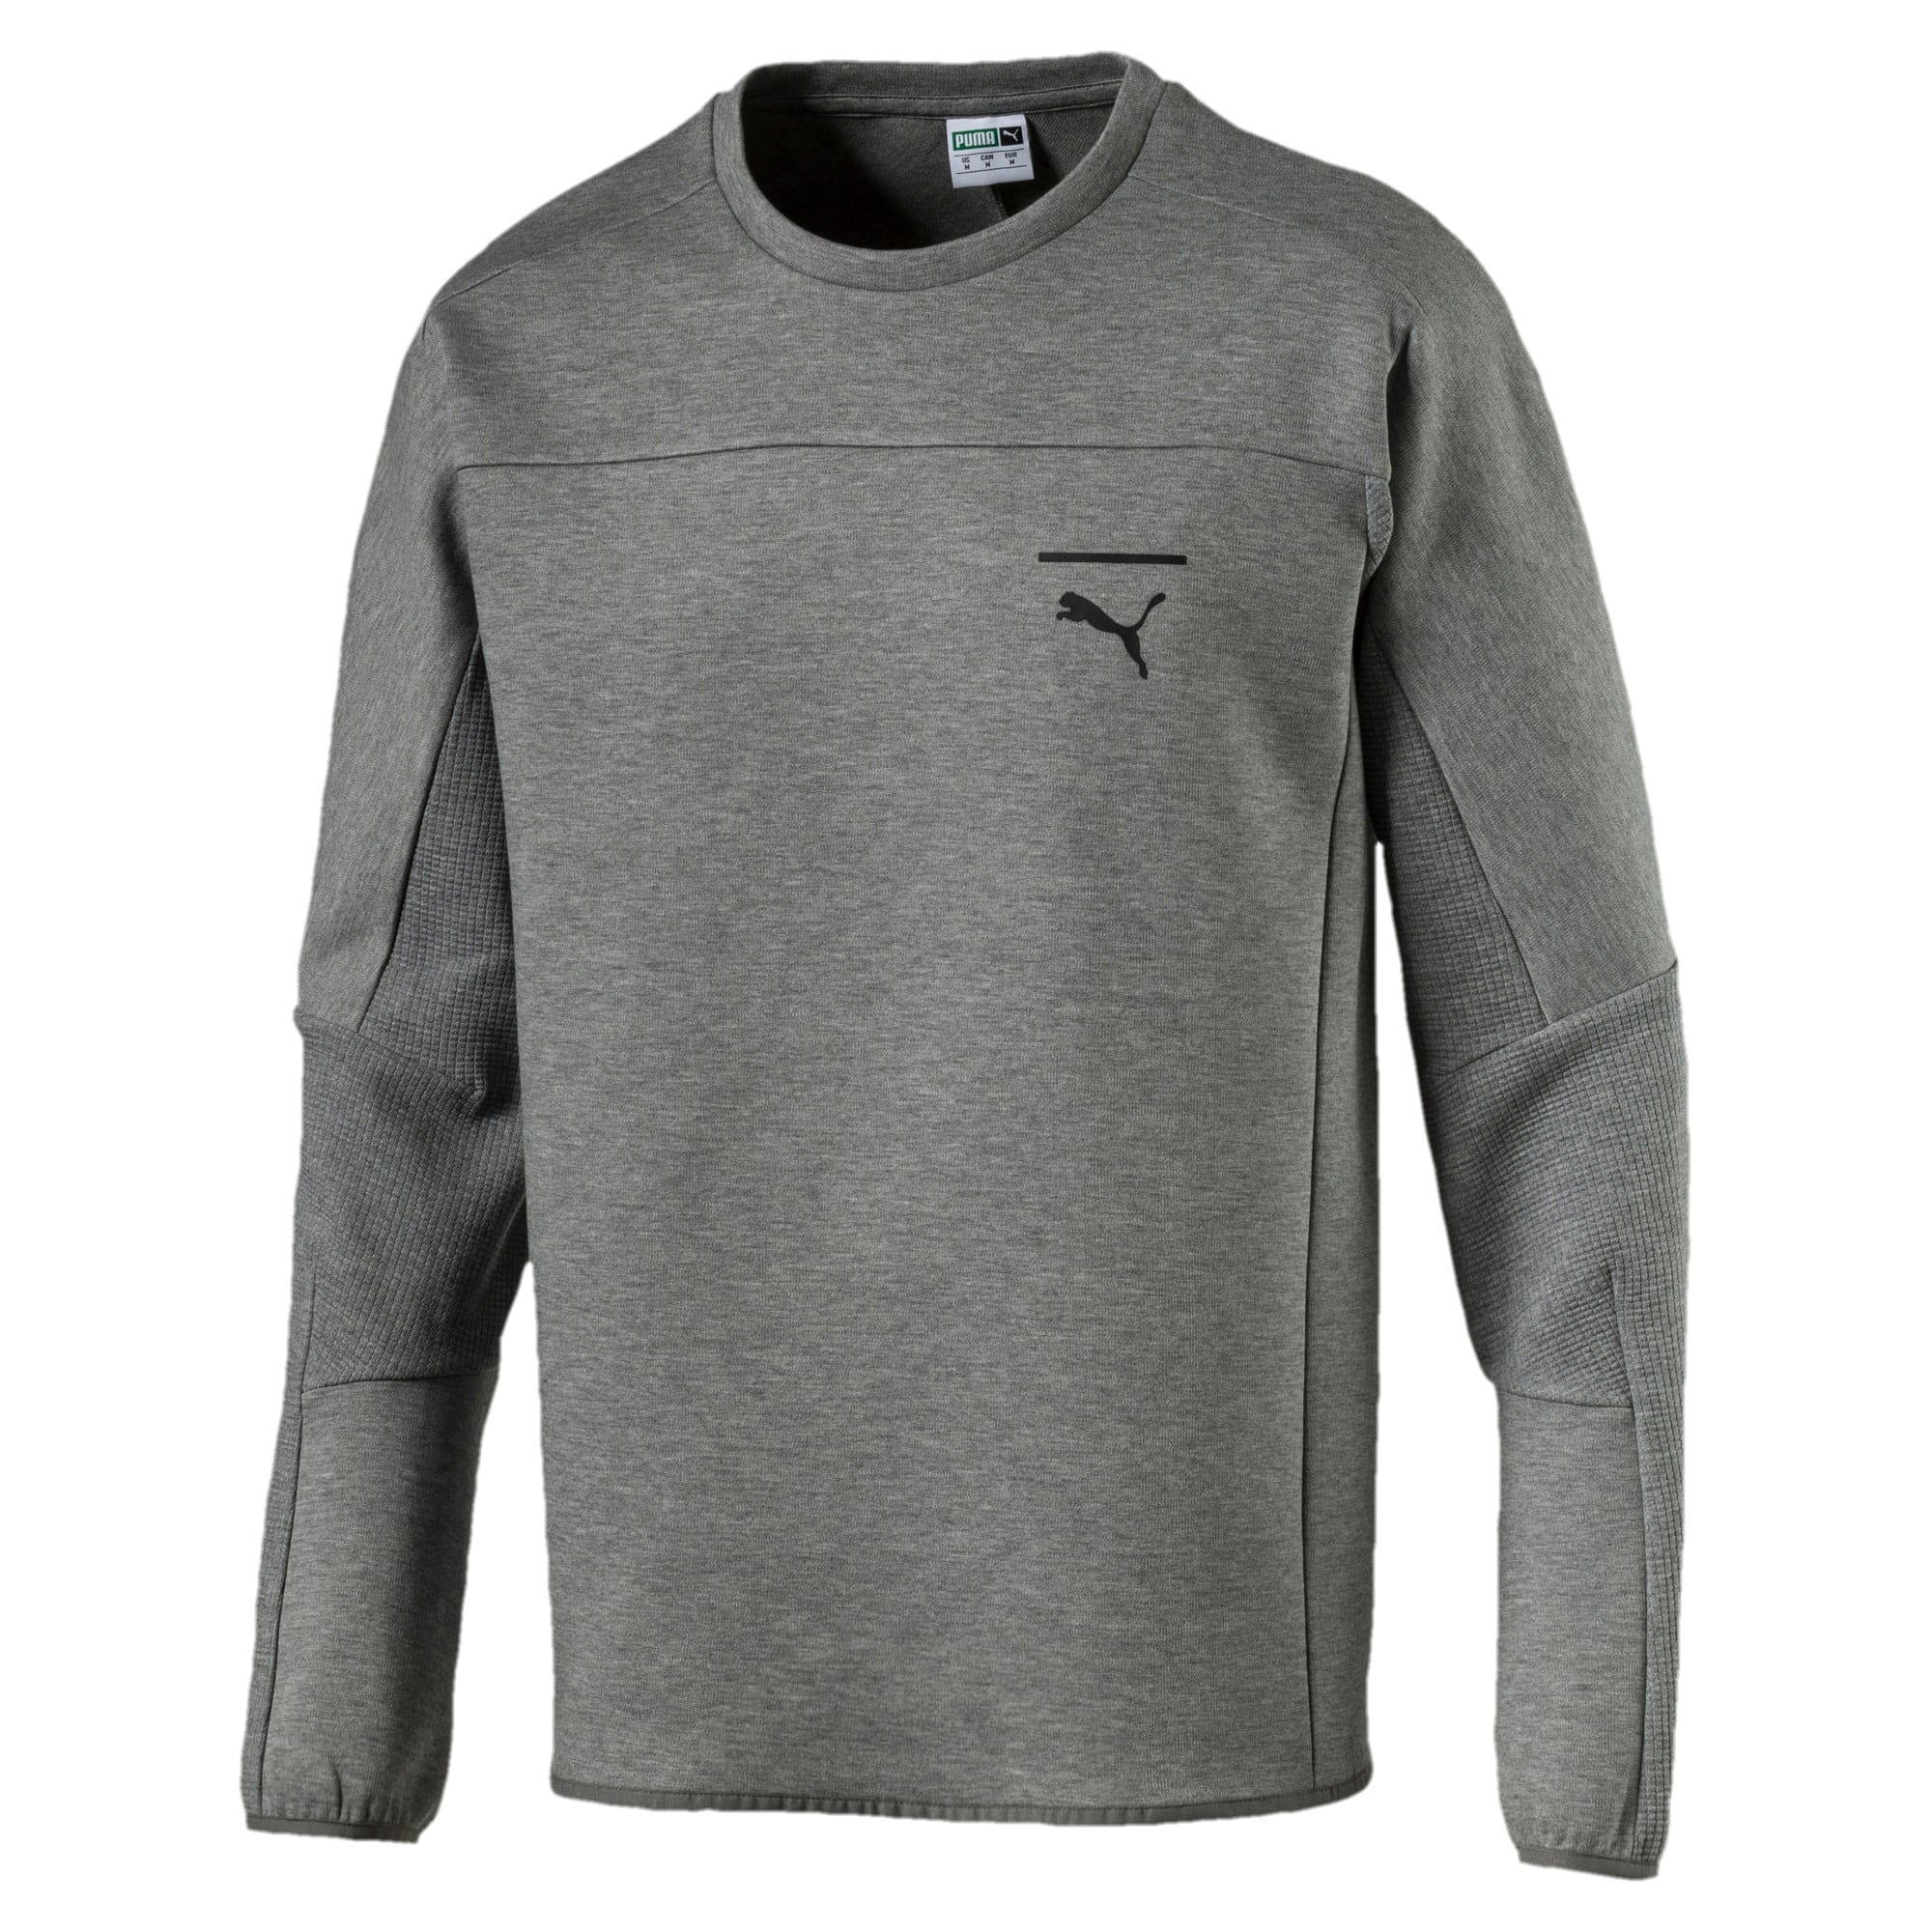 Thumbnail 3 of Pace Crew Neck Men's Sweatshirt, Medium Gray Heather, medium-IND